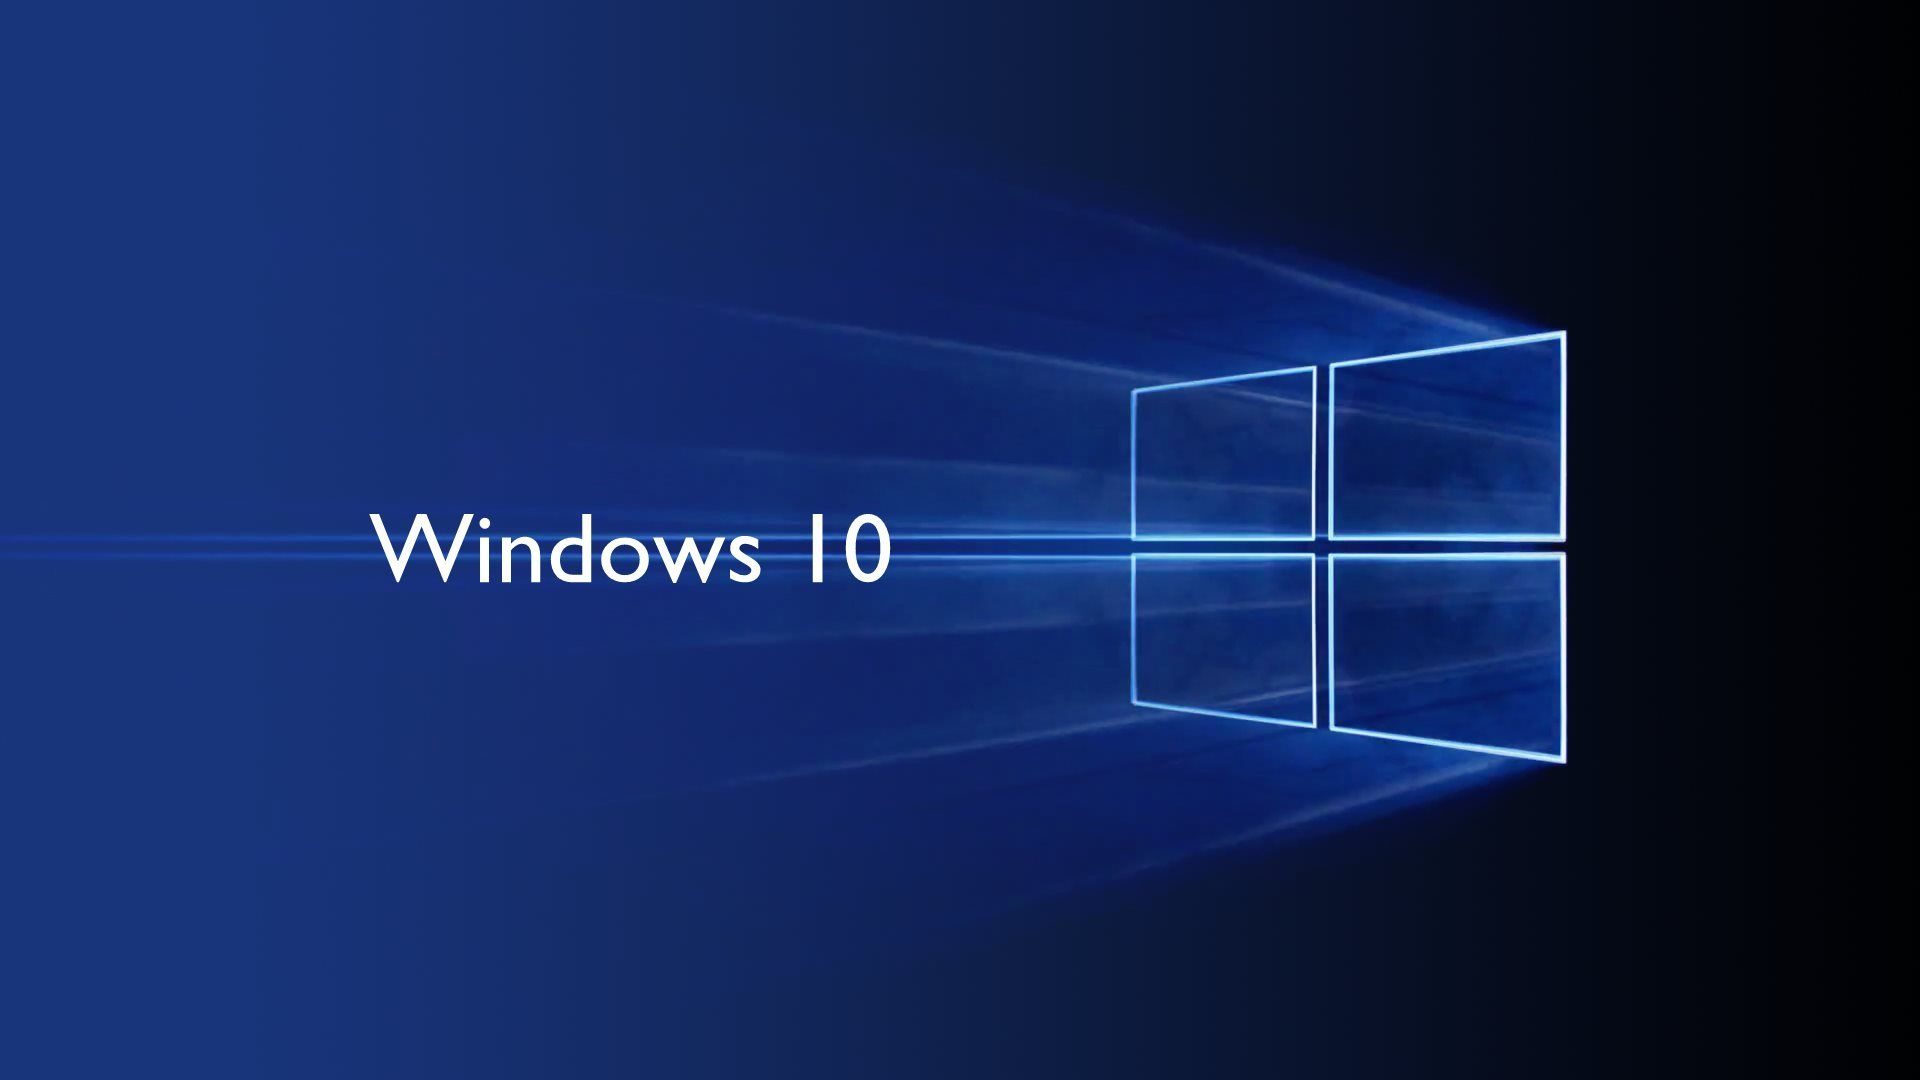 Windows 10 grande